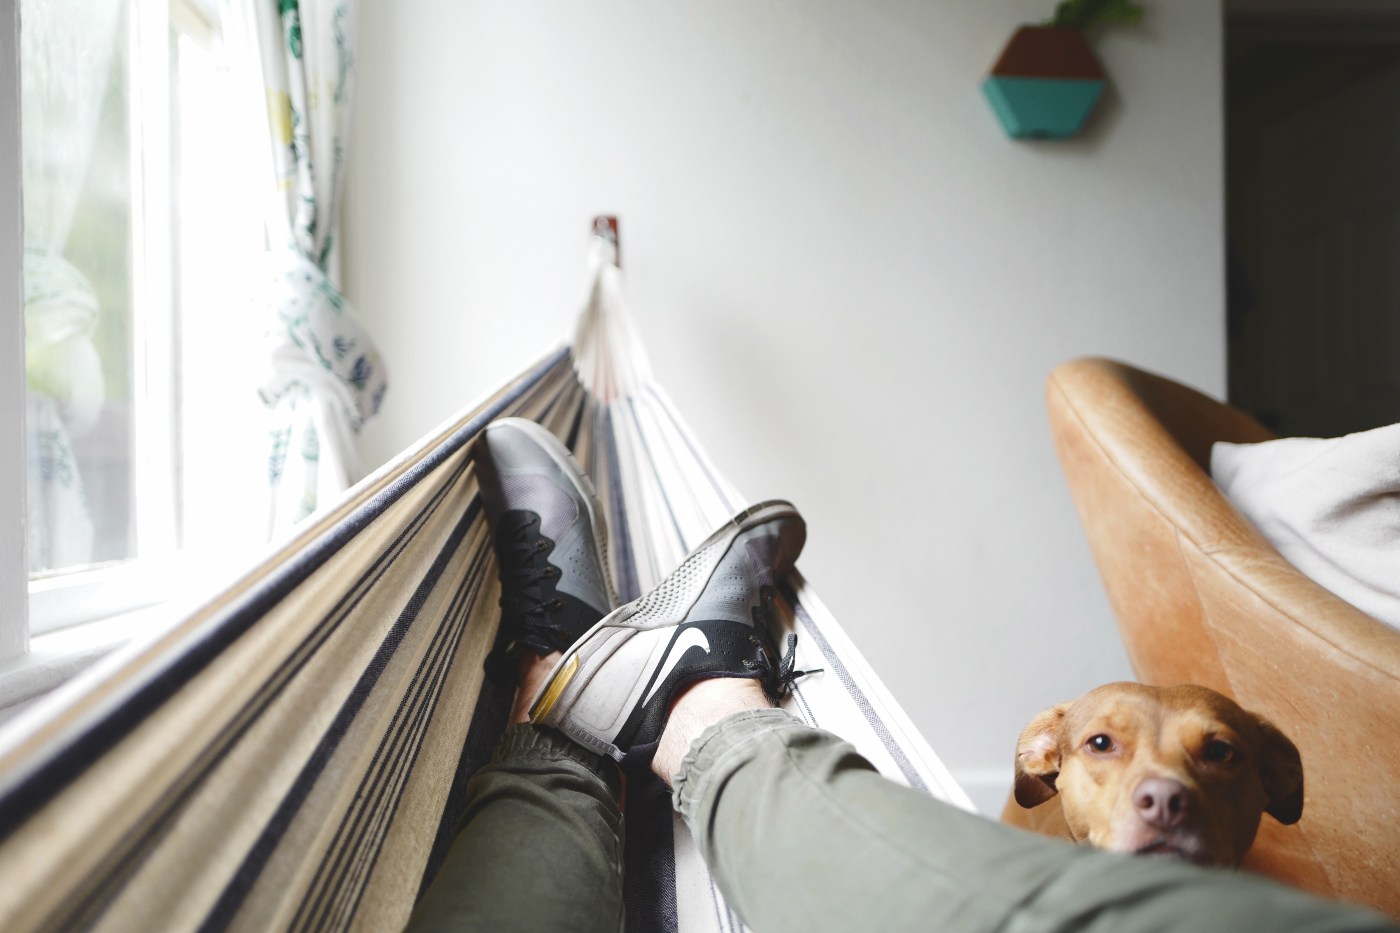 a person resting in a hammock next to a dog